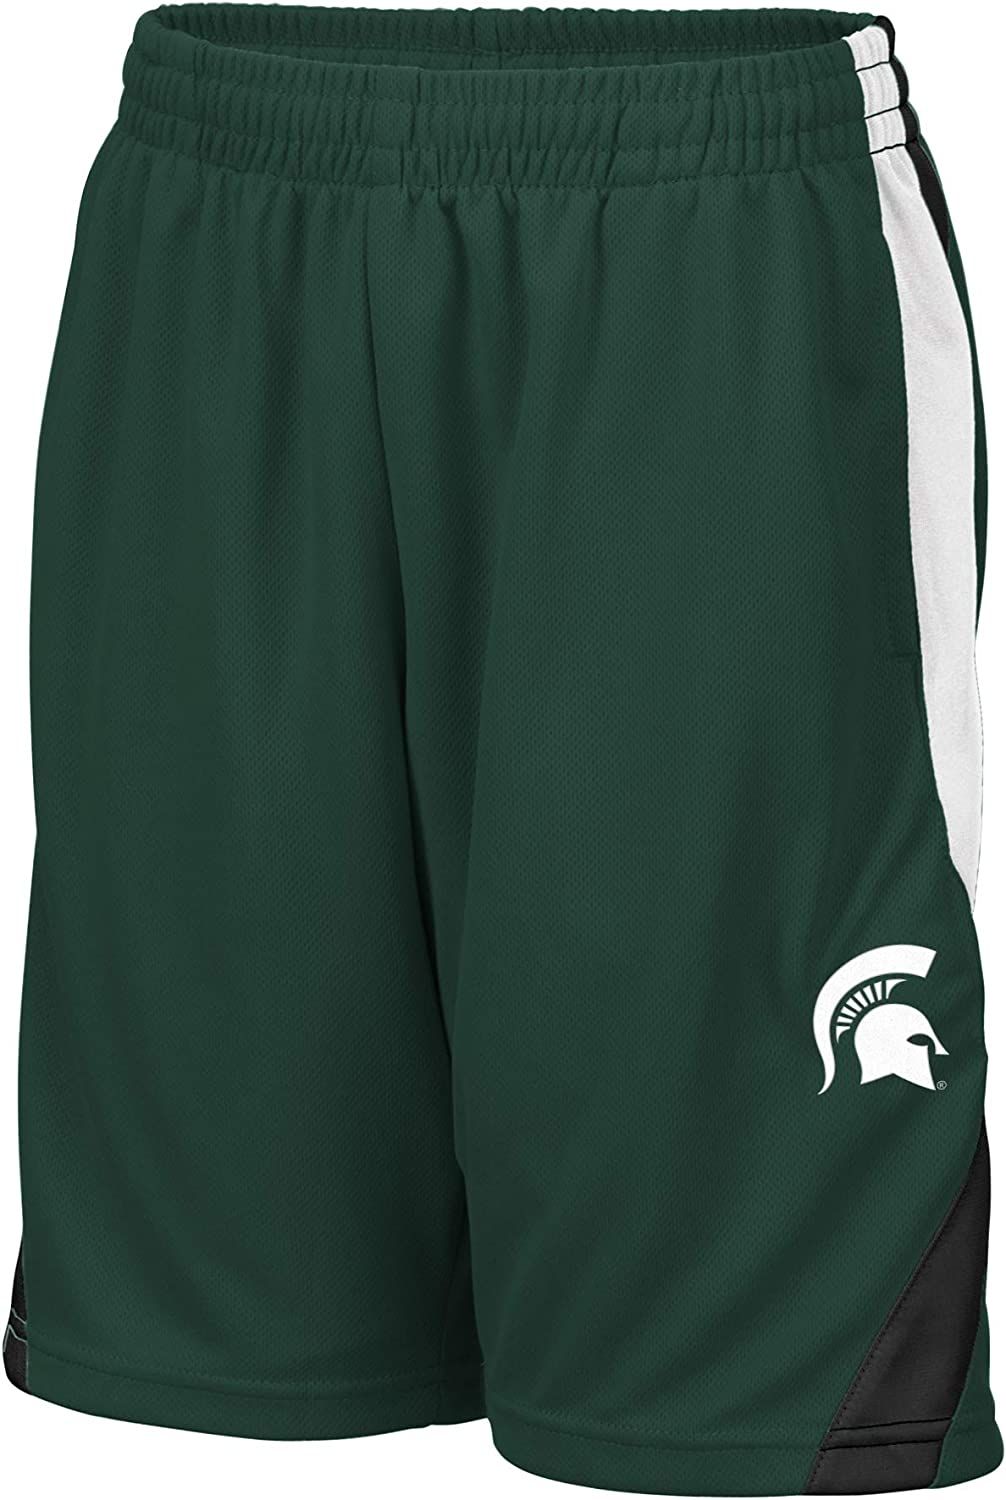 Colosseum Michigan State Spartans NCAA Youth Rio Short